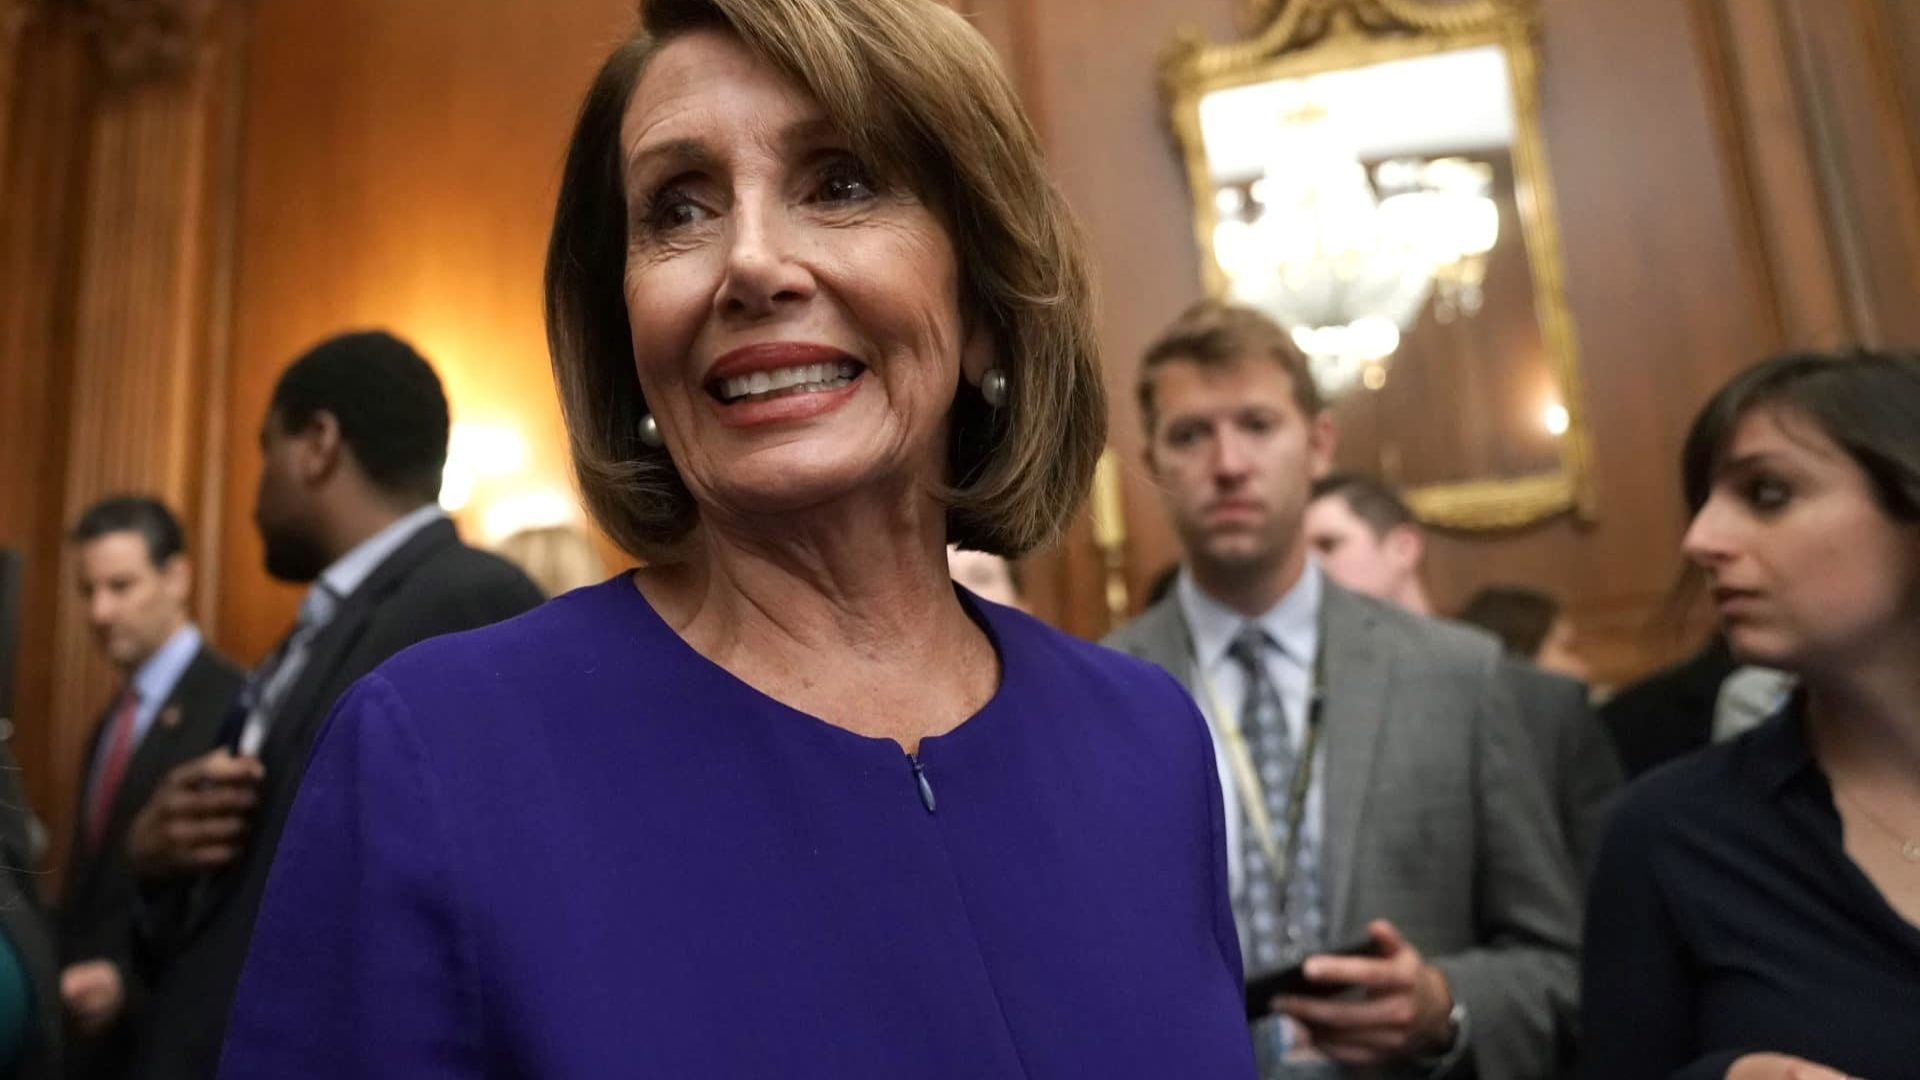 Opinion: Dear Nancy Pelosi: Donald Trump Deserves To Suffer, Impeachment Is A Good Start